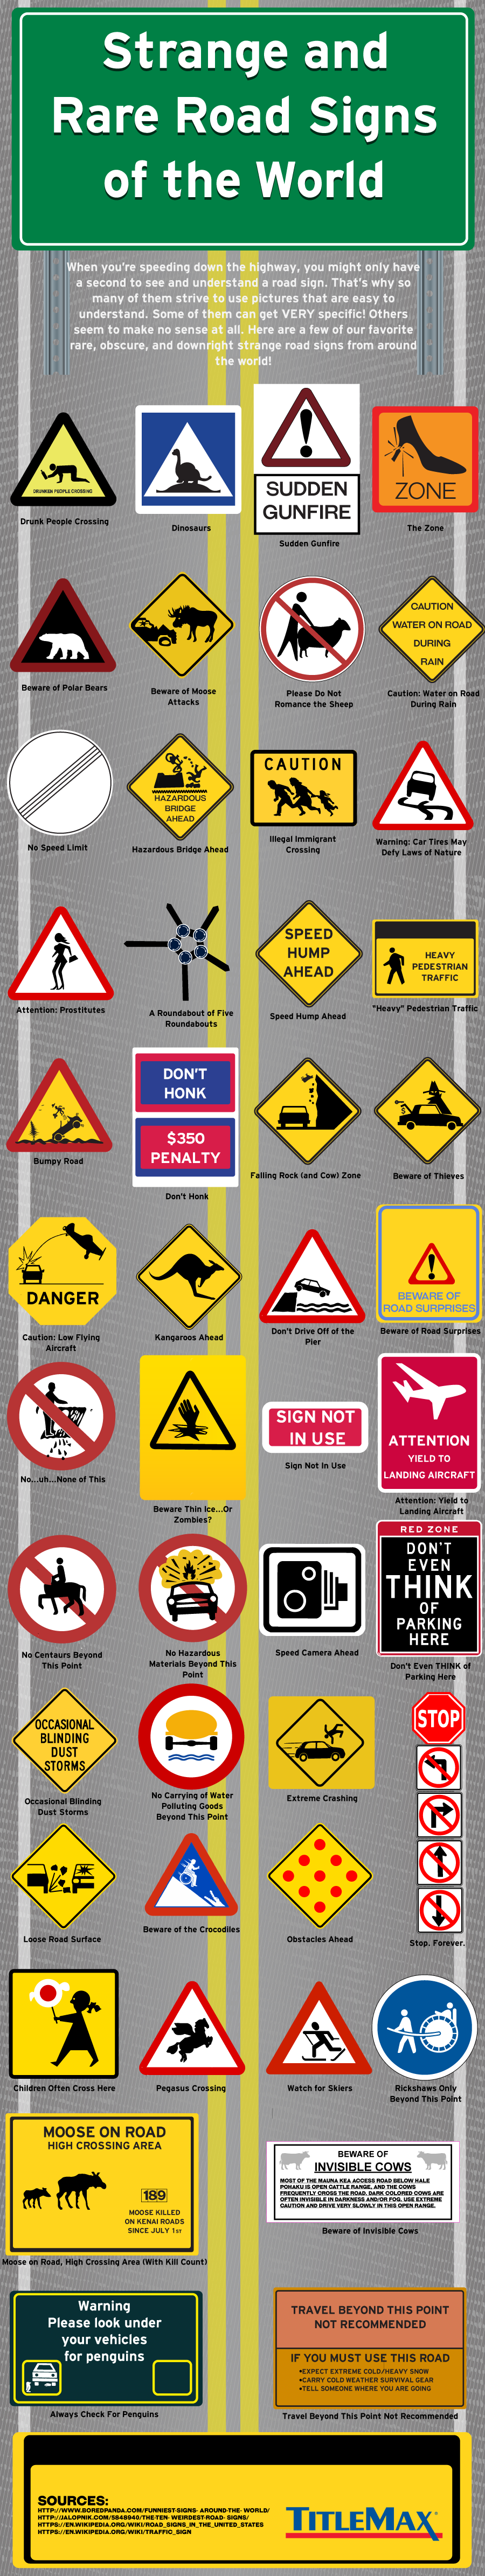 Strange and Rare Road Signs of the World